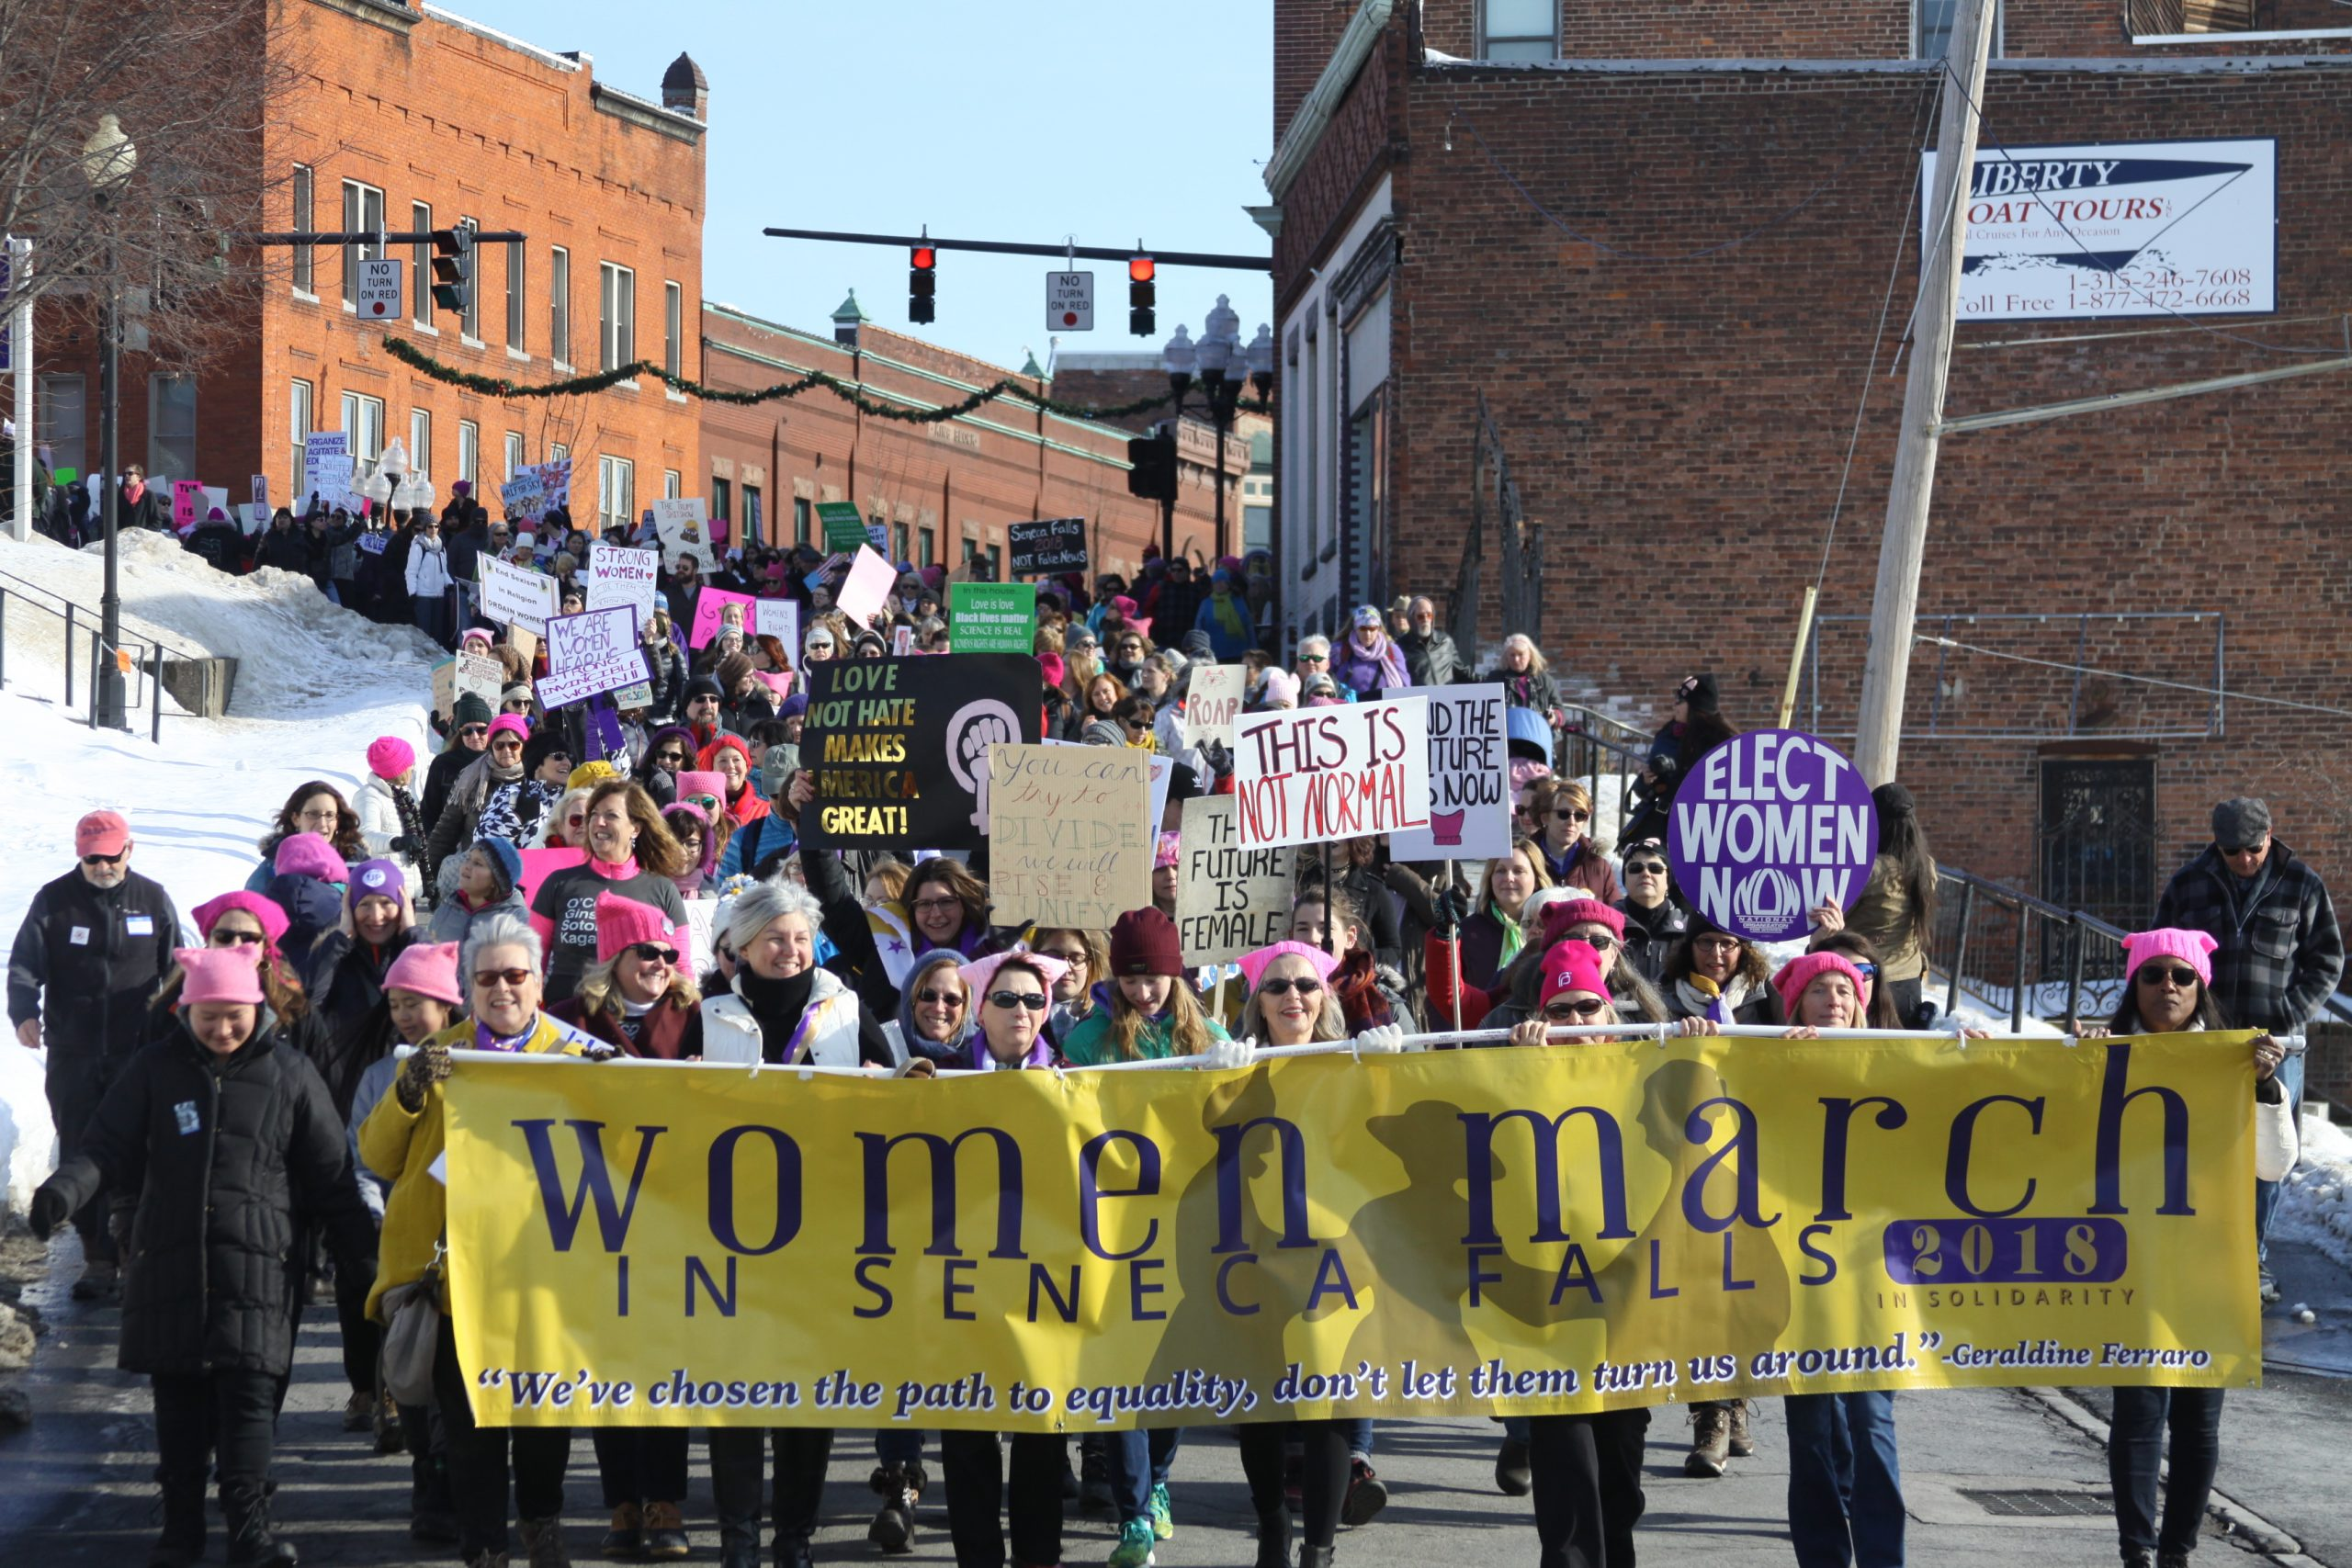 Thousands Take Part in Women's March (Photos and Video)